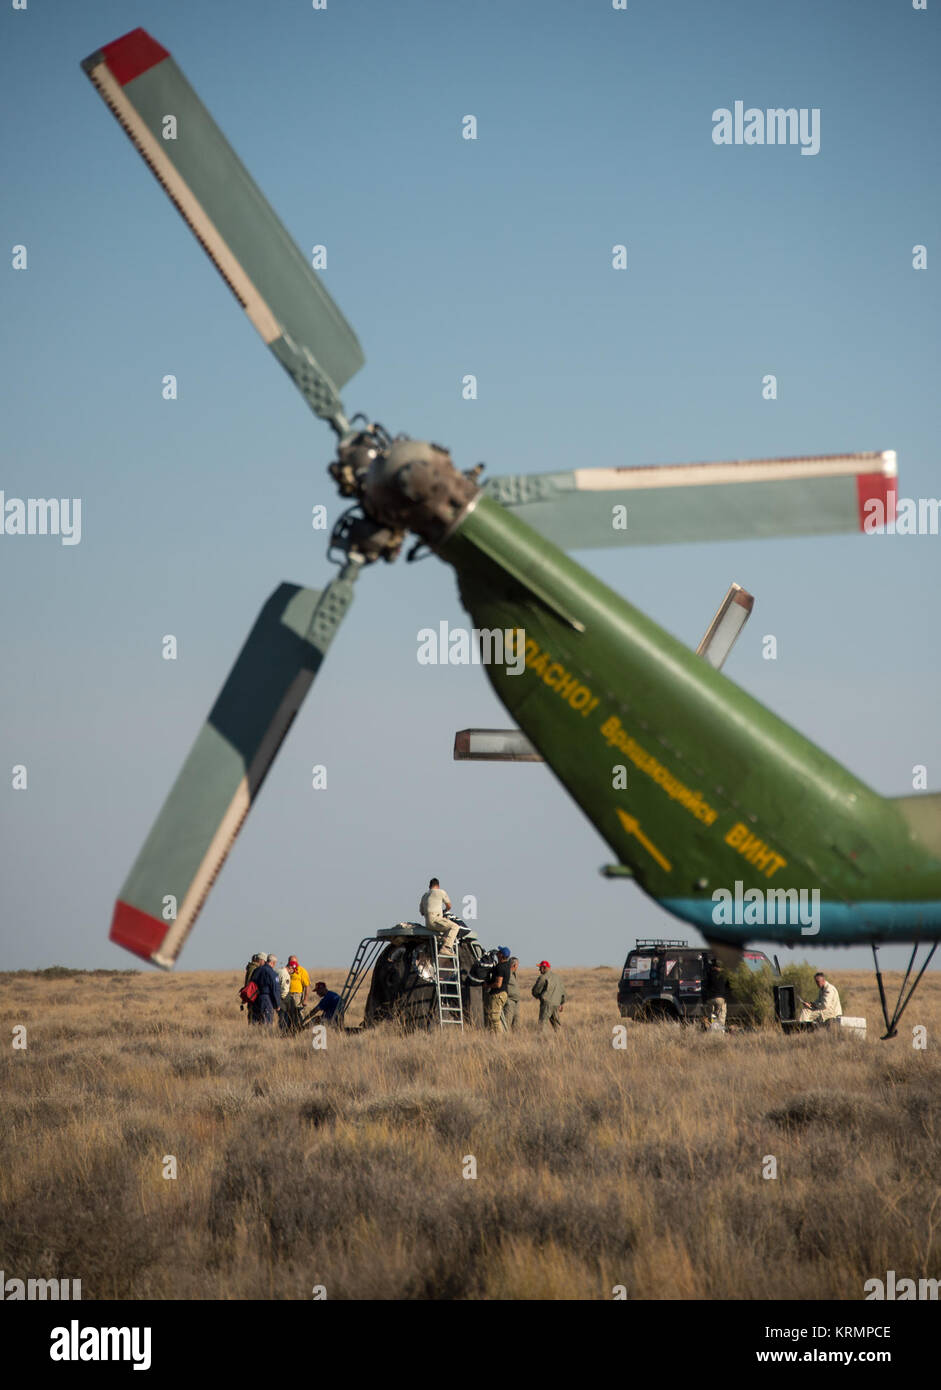 Russian support personnel work around the Soyuz TMA-20M spacecraft after it landed with with Expedition 48 crew - Stock Image